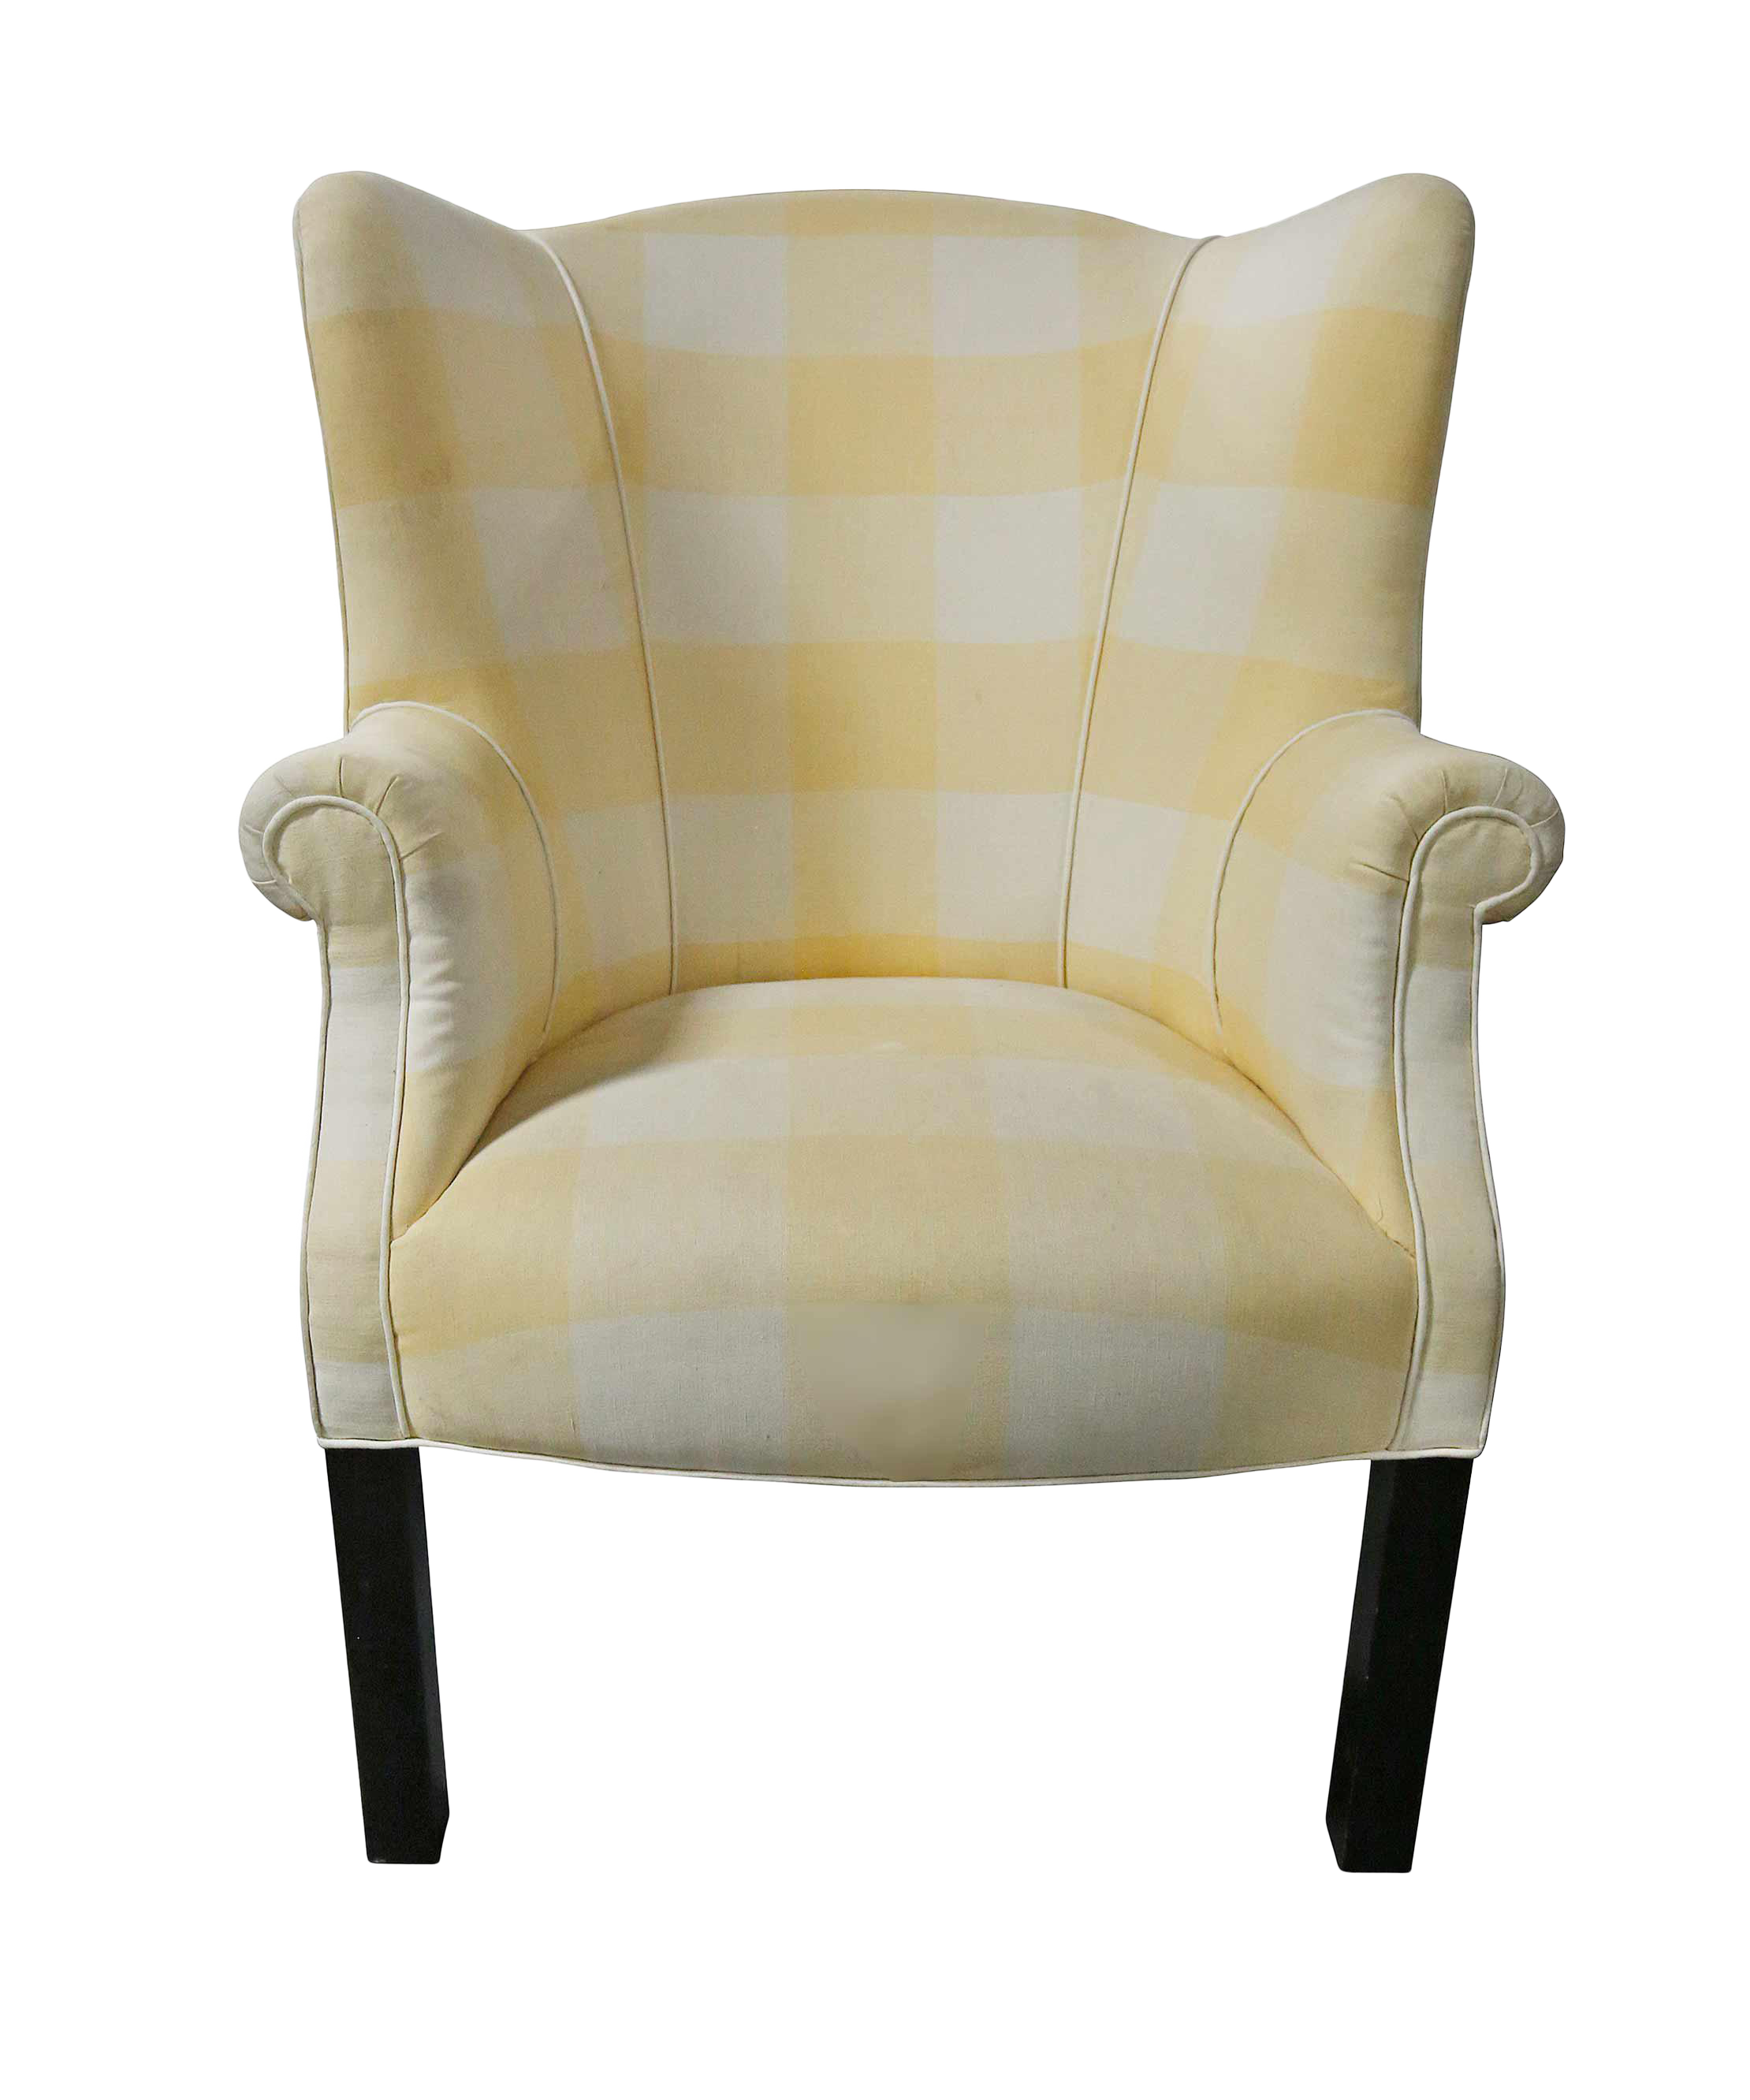 20Th Century Traditional Armchair White And Yellow Upholstery Wingback Chair